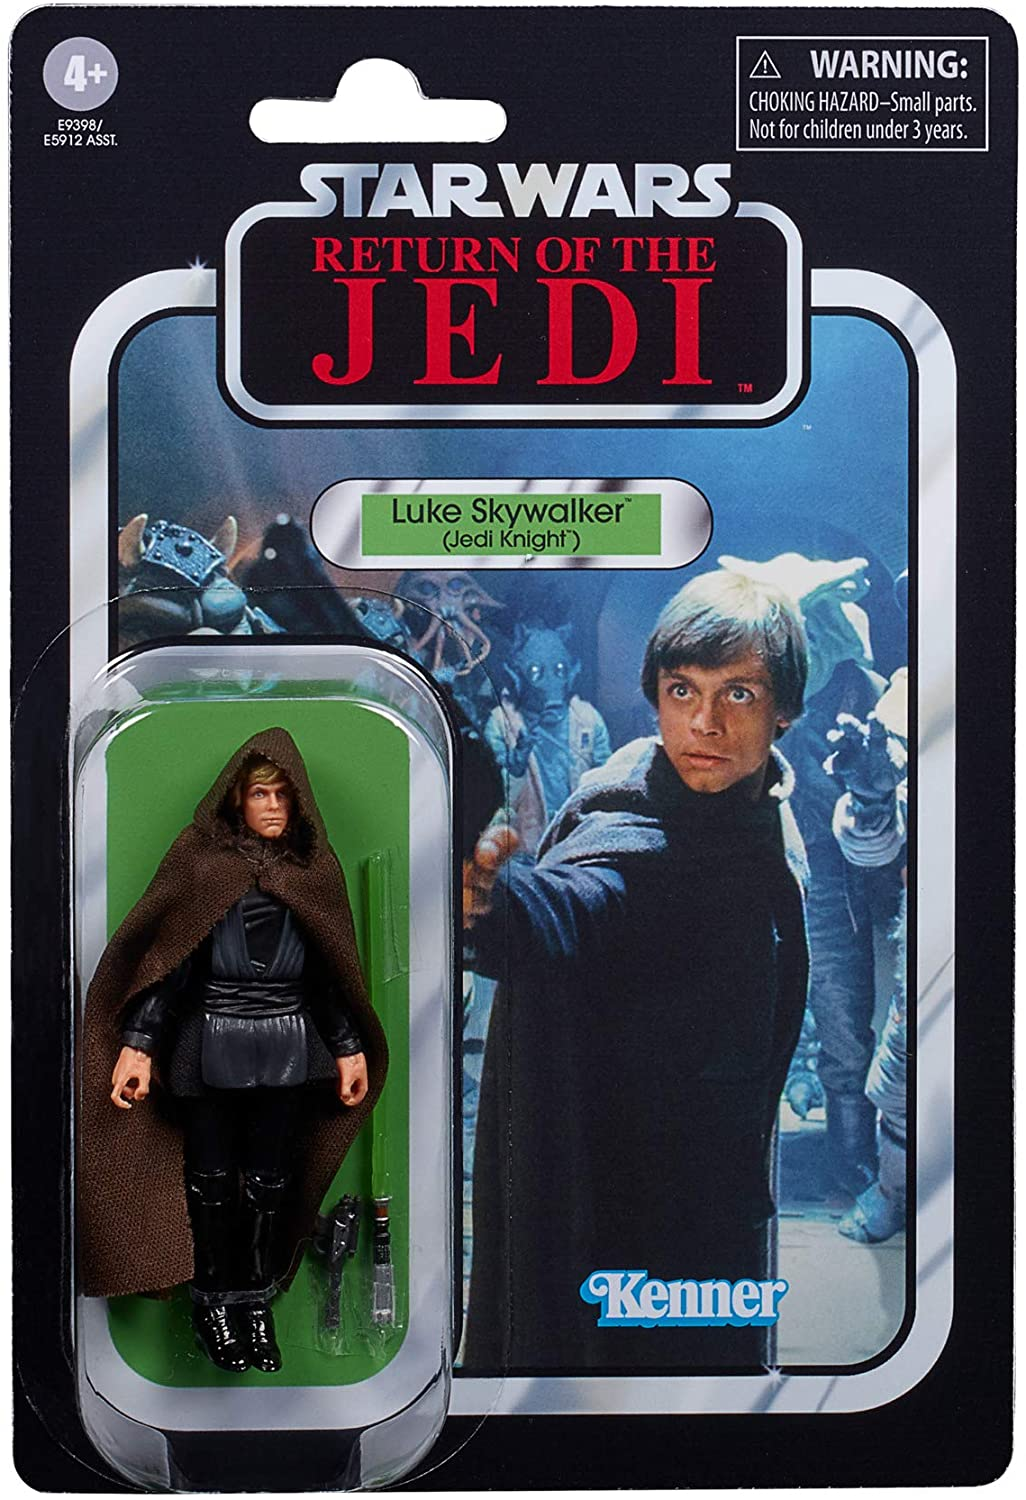 Amazon Com Star Wars The Vintage Collection Luke Skywalker Jedi Knight Toy 3 75 Inch Scale Return Of The Jedi Figure Kids Ages 4 And Up Toys Games